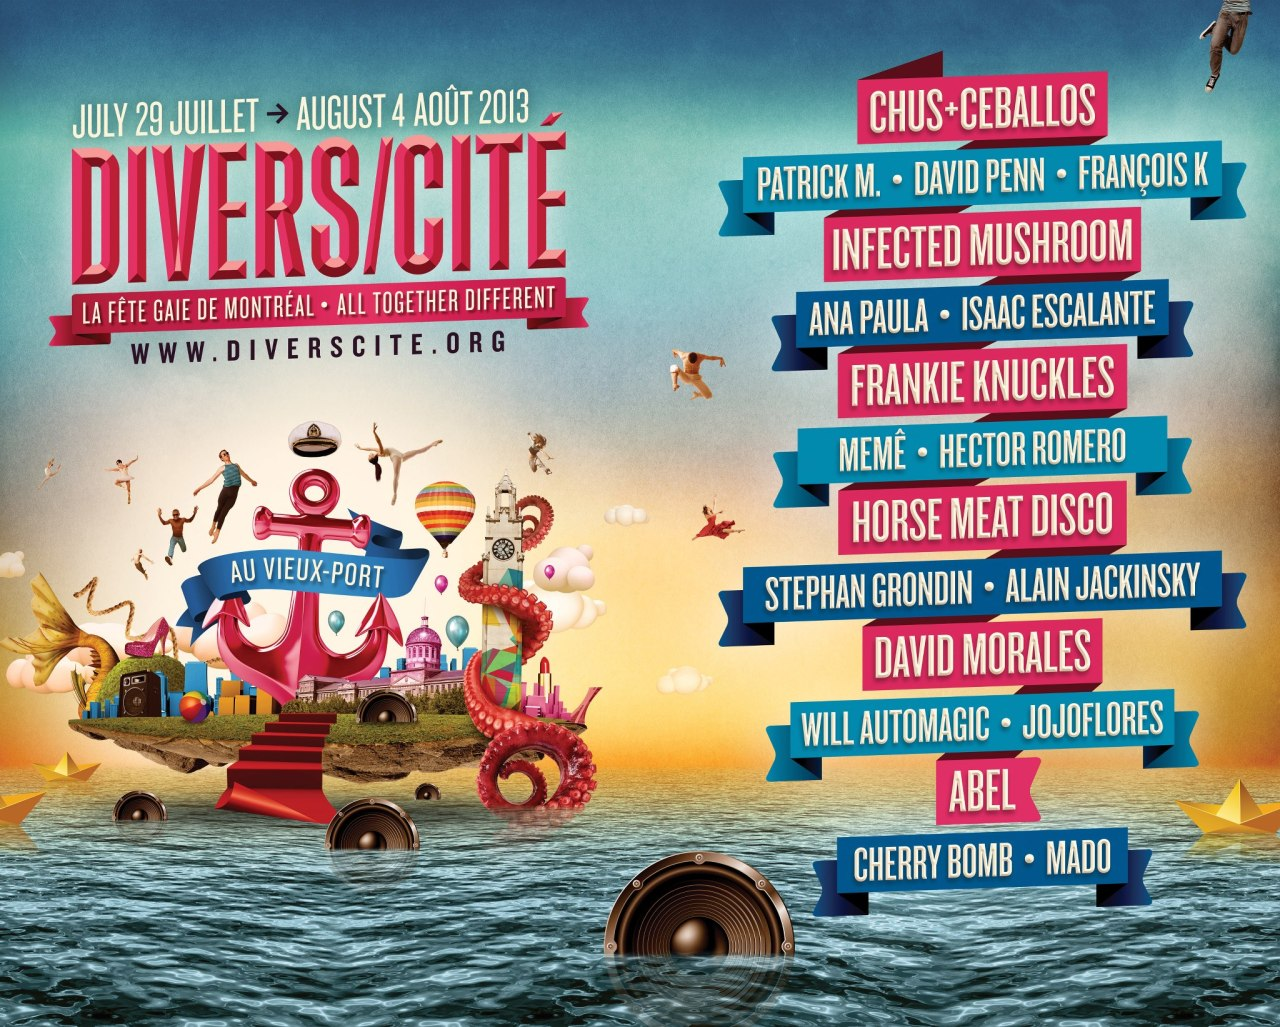 Nous sommes heureux d'accueillir Divers/Cité au Vieux-Port encore cet été!   We're very happy to once again welcome Divers/Cité in the Old Port this summer!